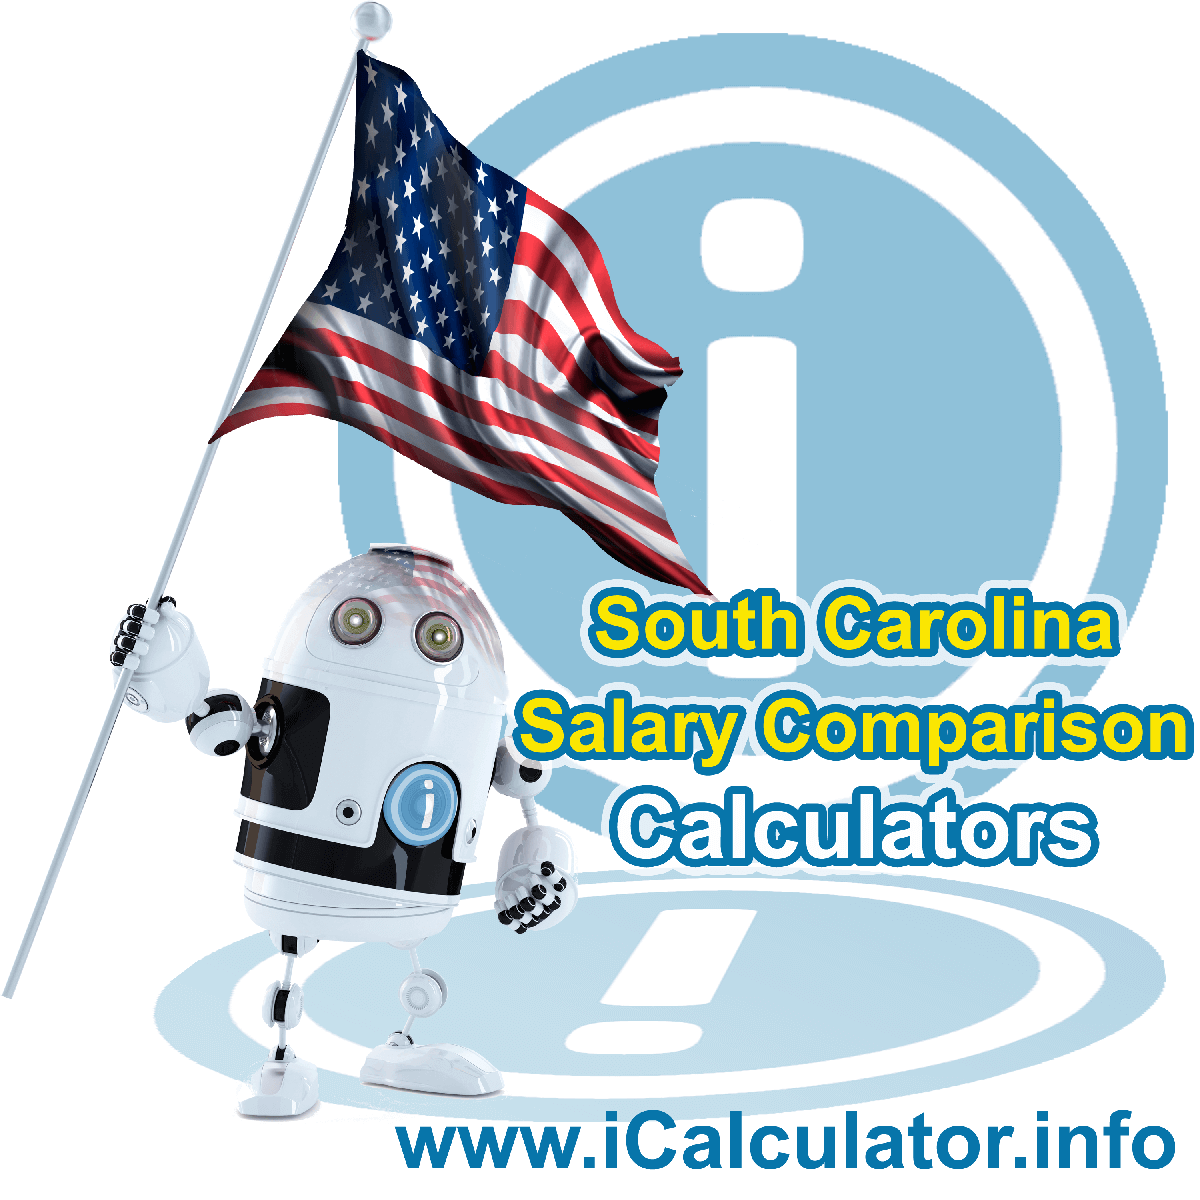 South Carolina Salary Comparison Calculator 2020 | iCalculator | The South Carolina Salary Comparison Calculator allows you to quickly calculate and compare upto 6 salaries in South Carolina or between other states for the 2020 tax year and historical tax years. Its an excellent tool for jobseekers, pay raise comparison and comparison of salaries between different US States